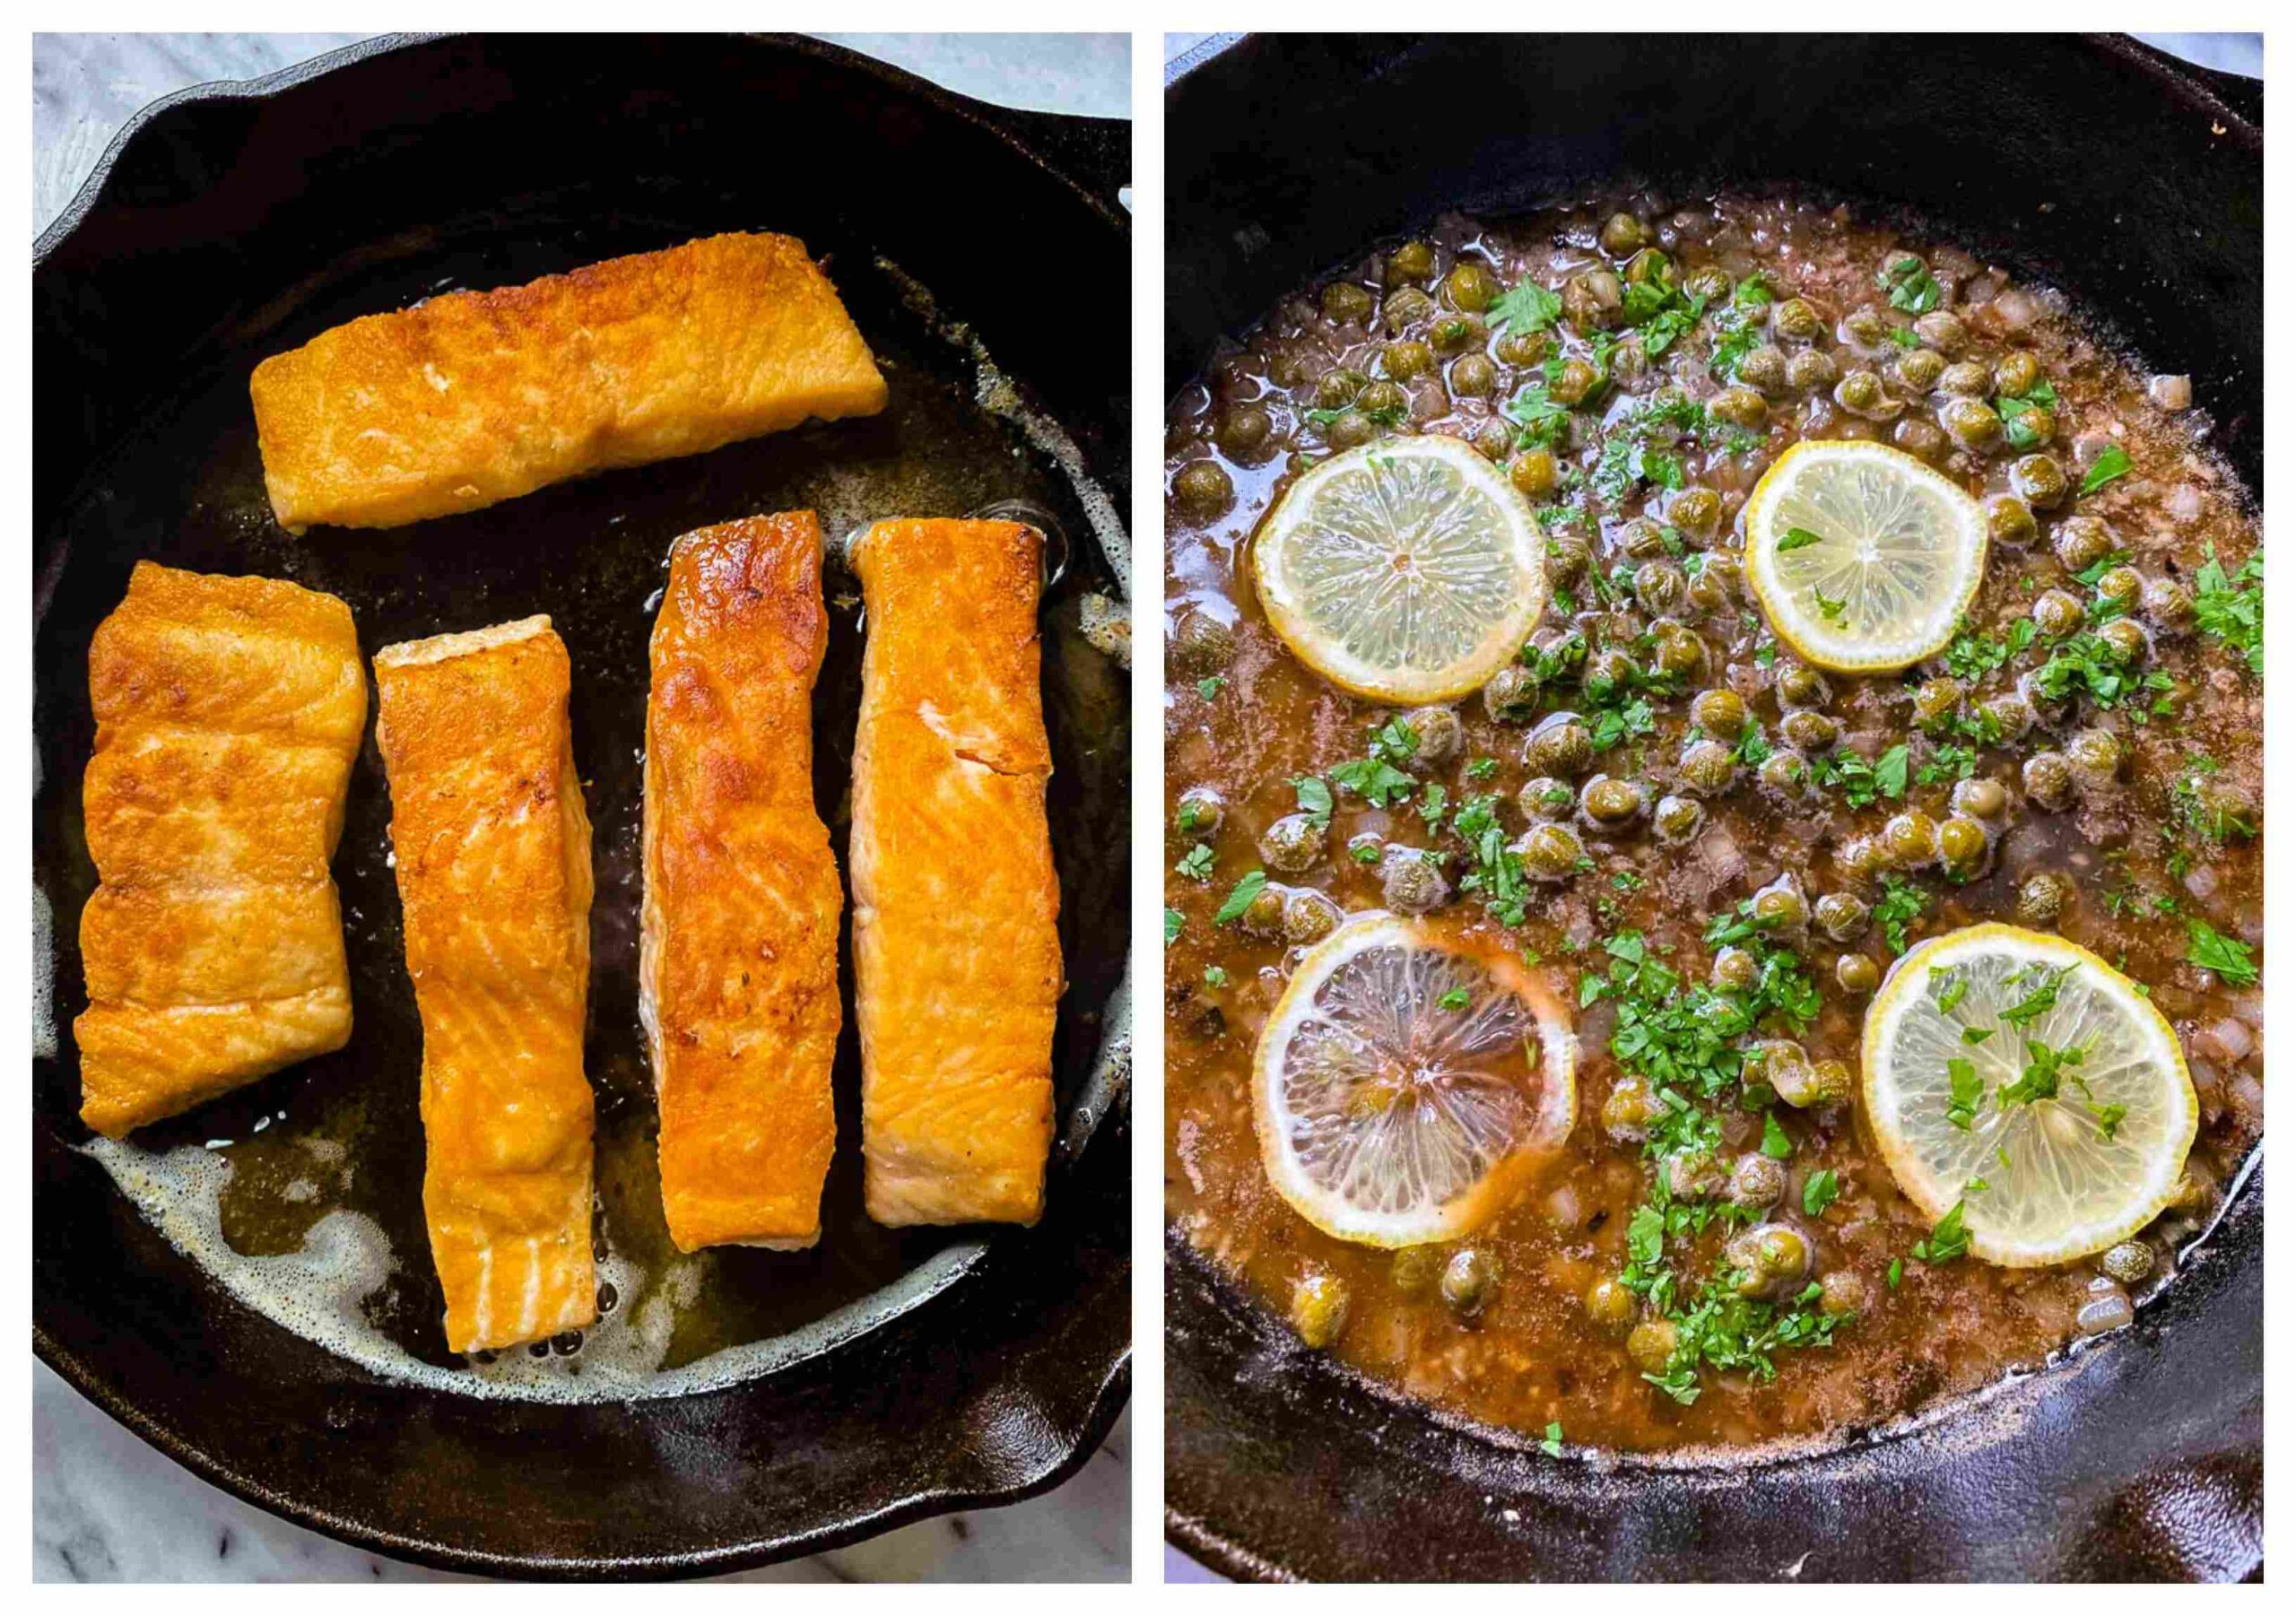 salmon piccata recipe process images for salmon and the sauce